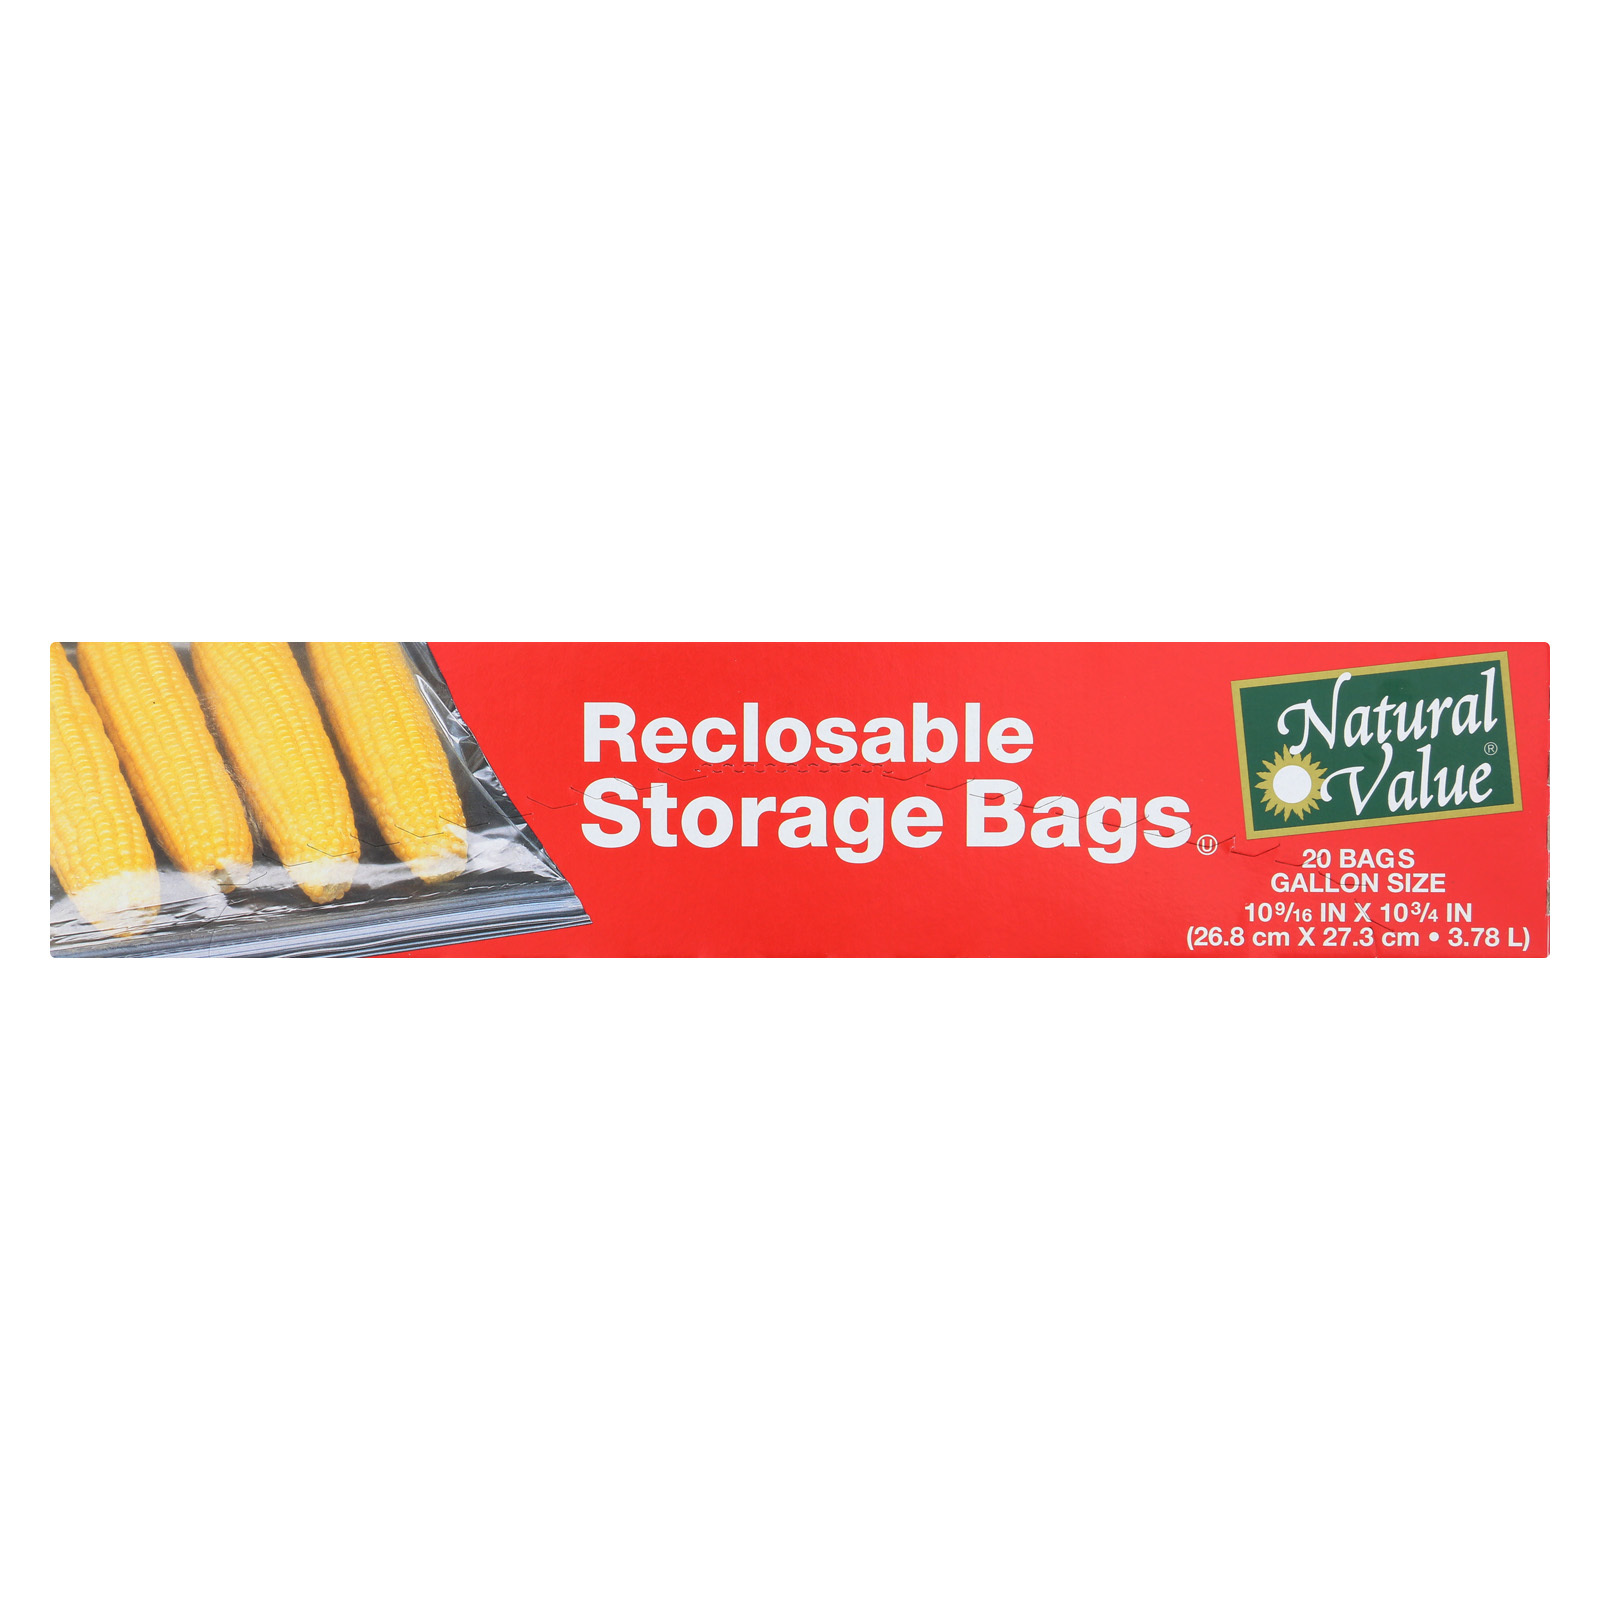 Natural Value Reclosable Storage Bags - Case of 12 - 20 Count